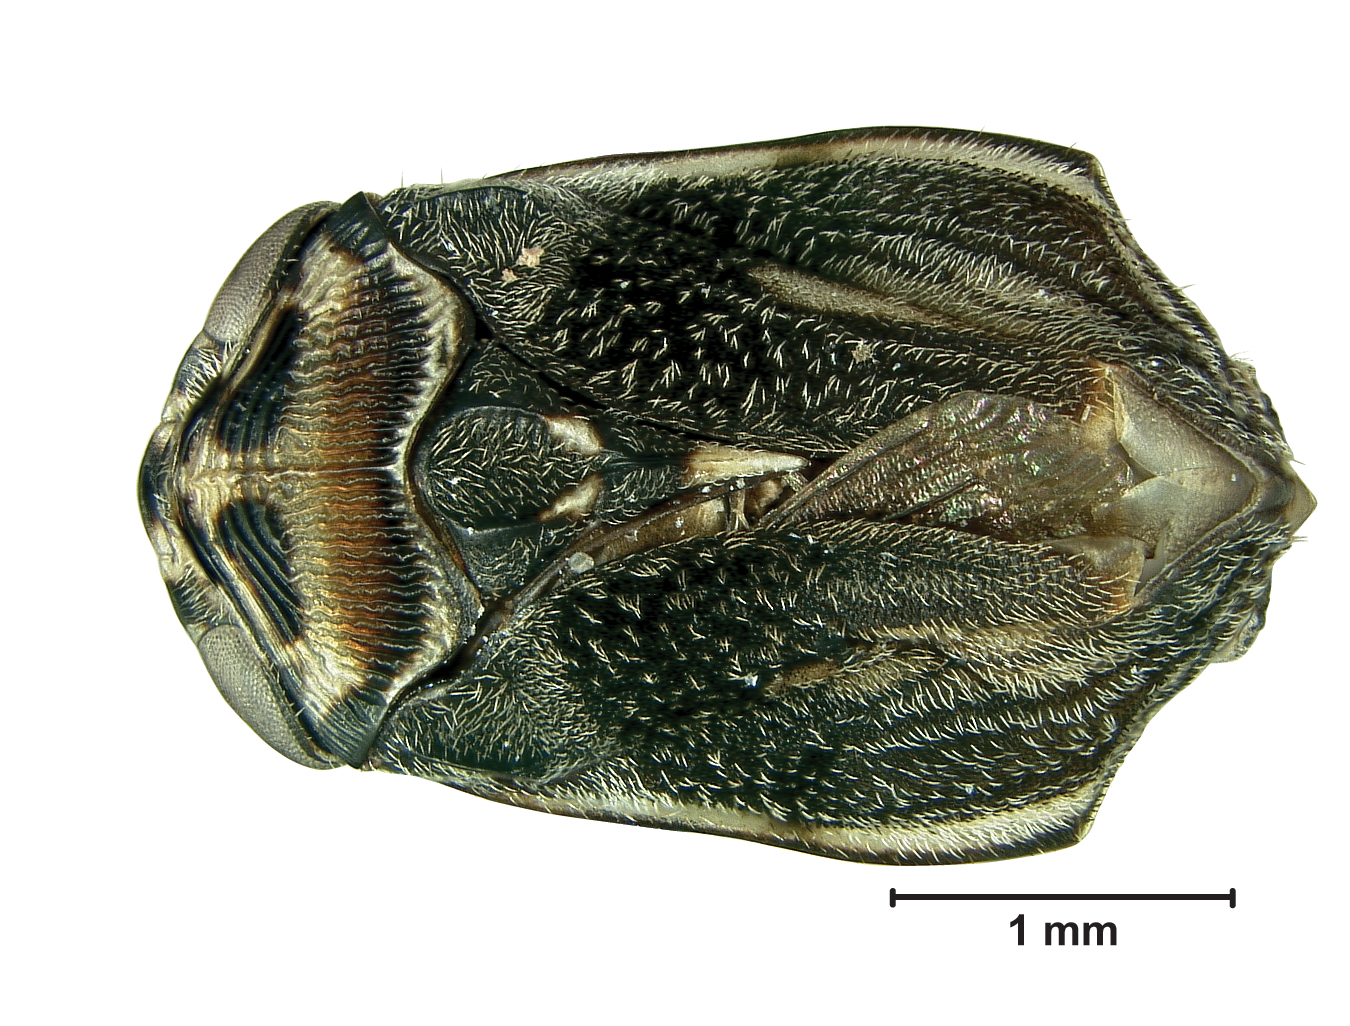 Image of the new species of spittlebug.